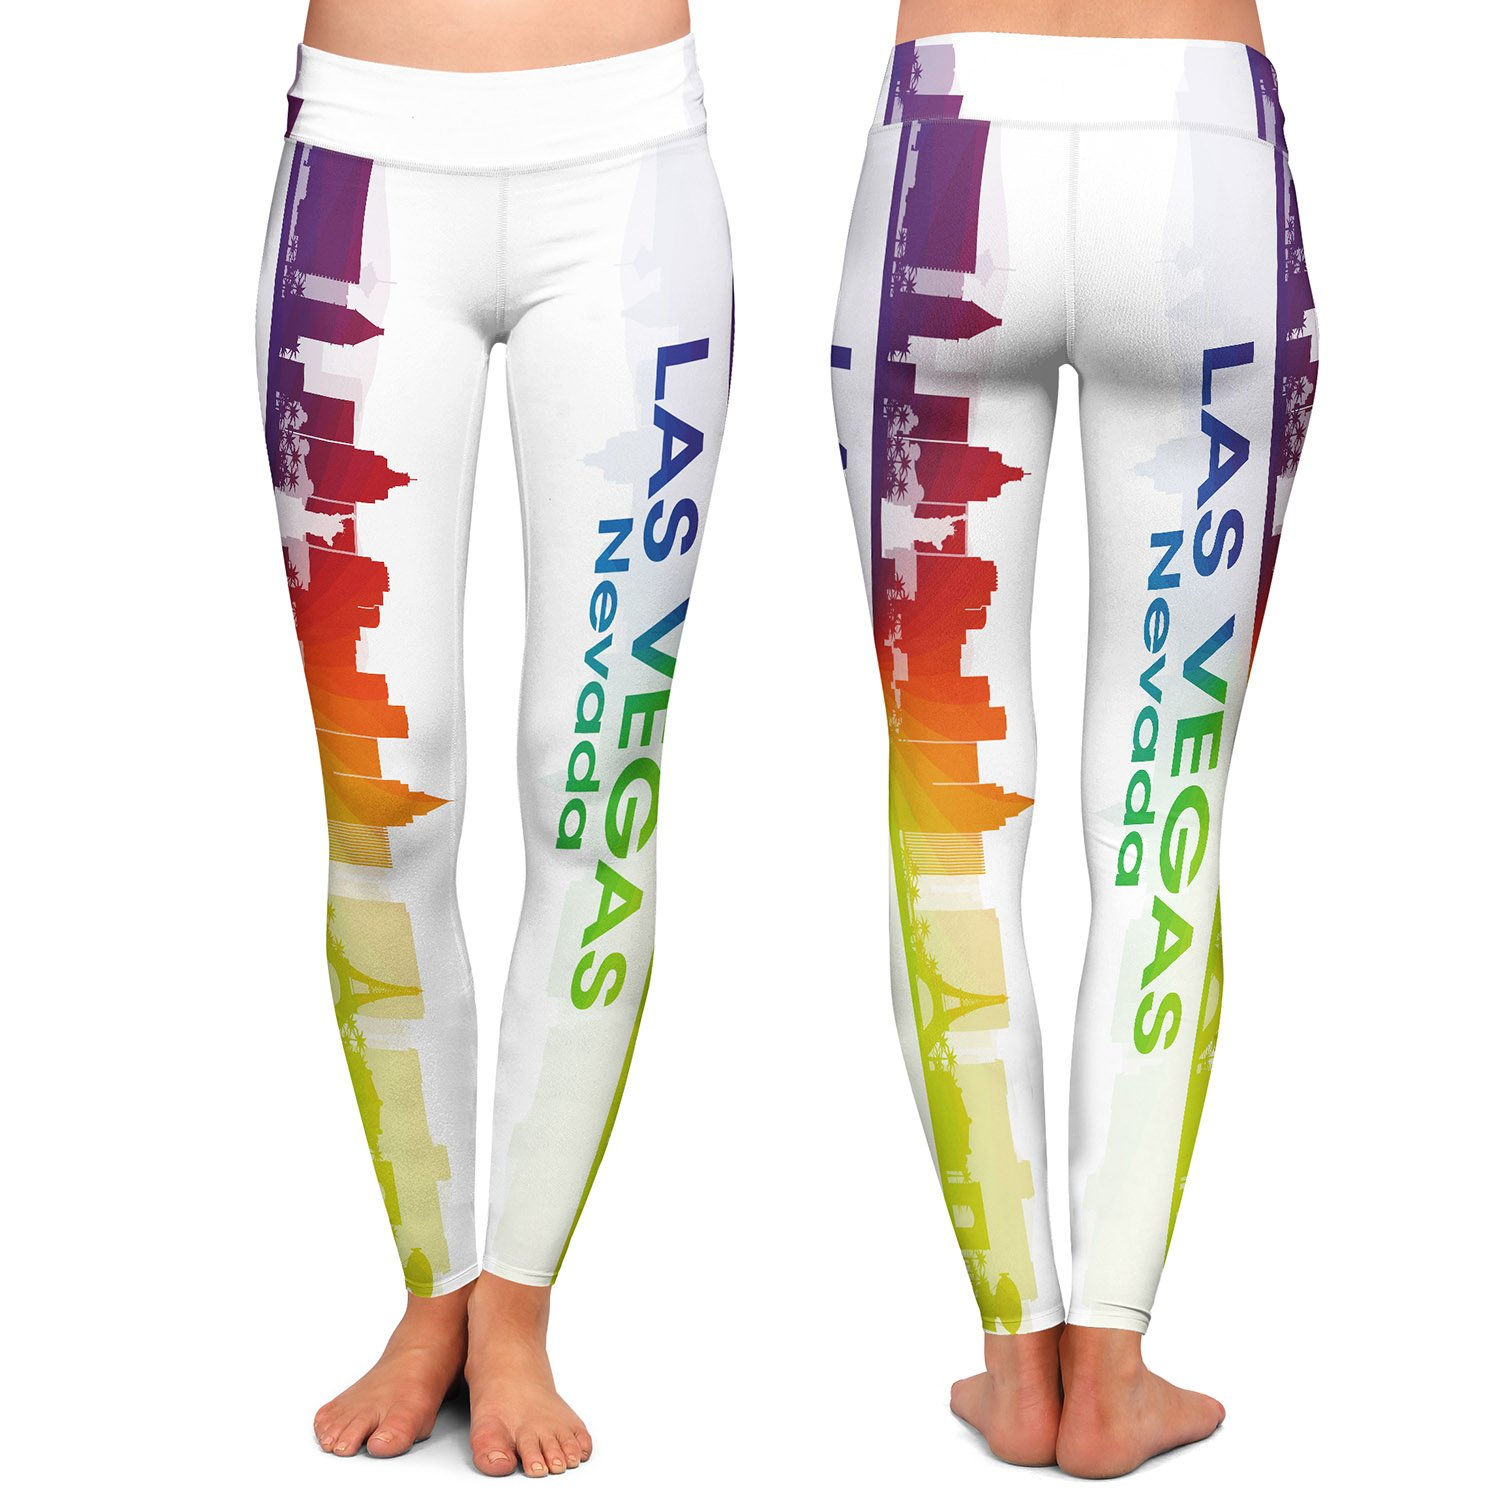 Athletic Yoga Leggings from DiaNoche by Angelina Vick City I Las Vegas Nevada